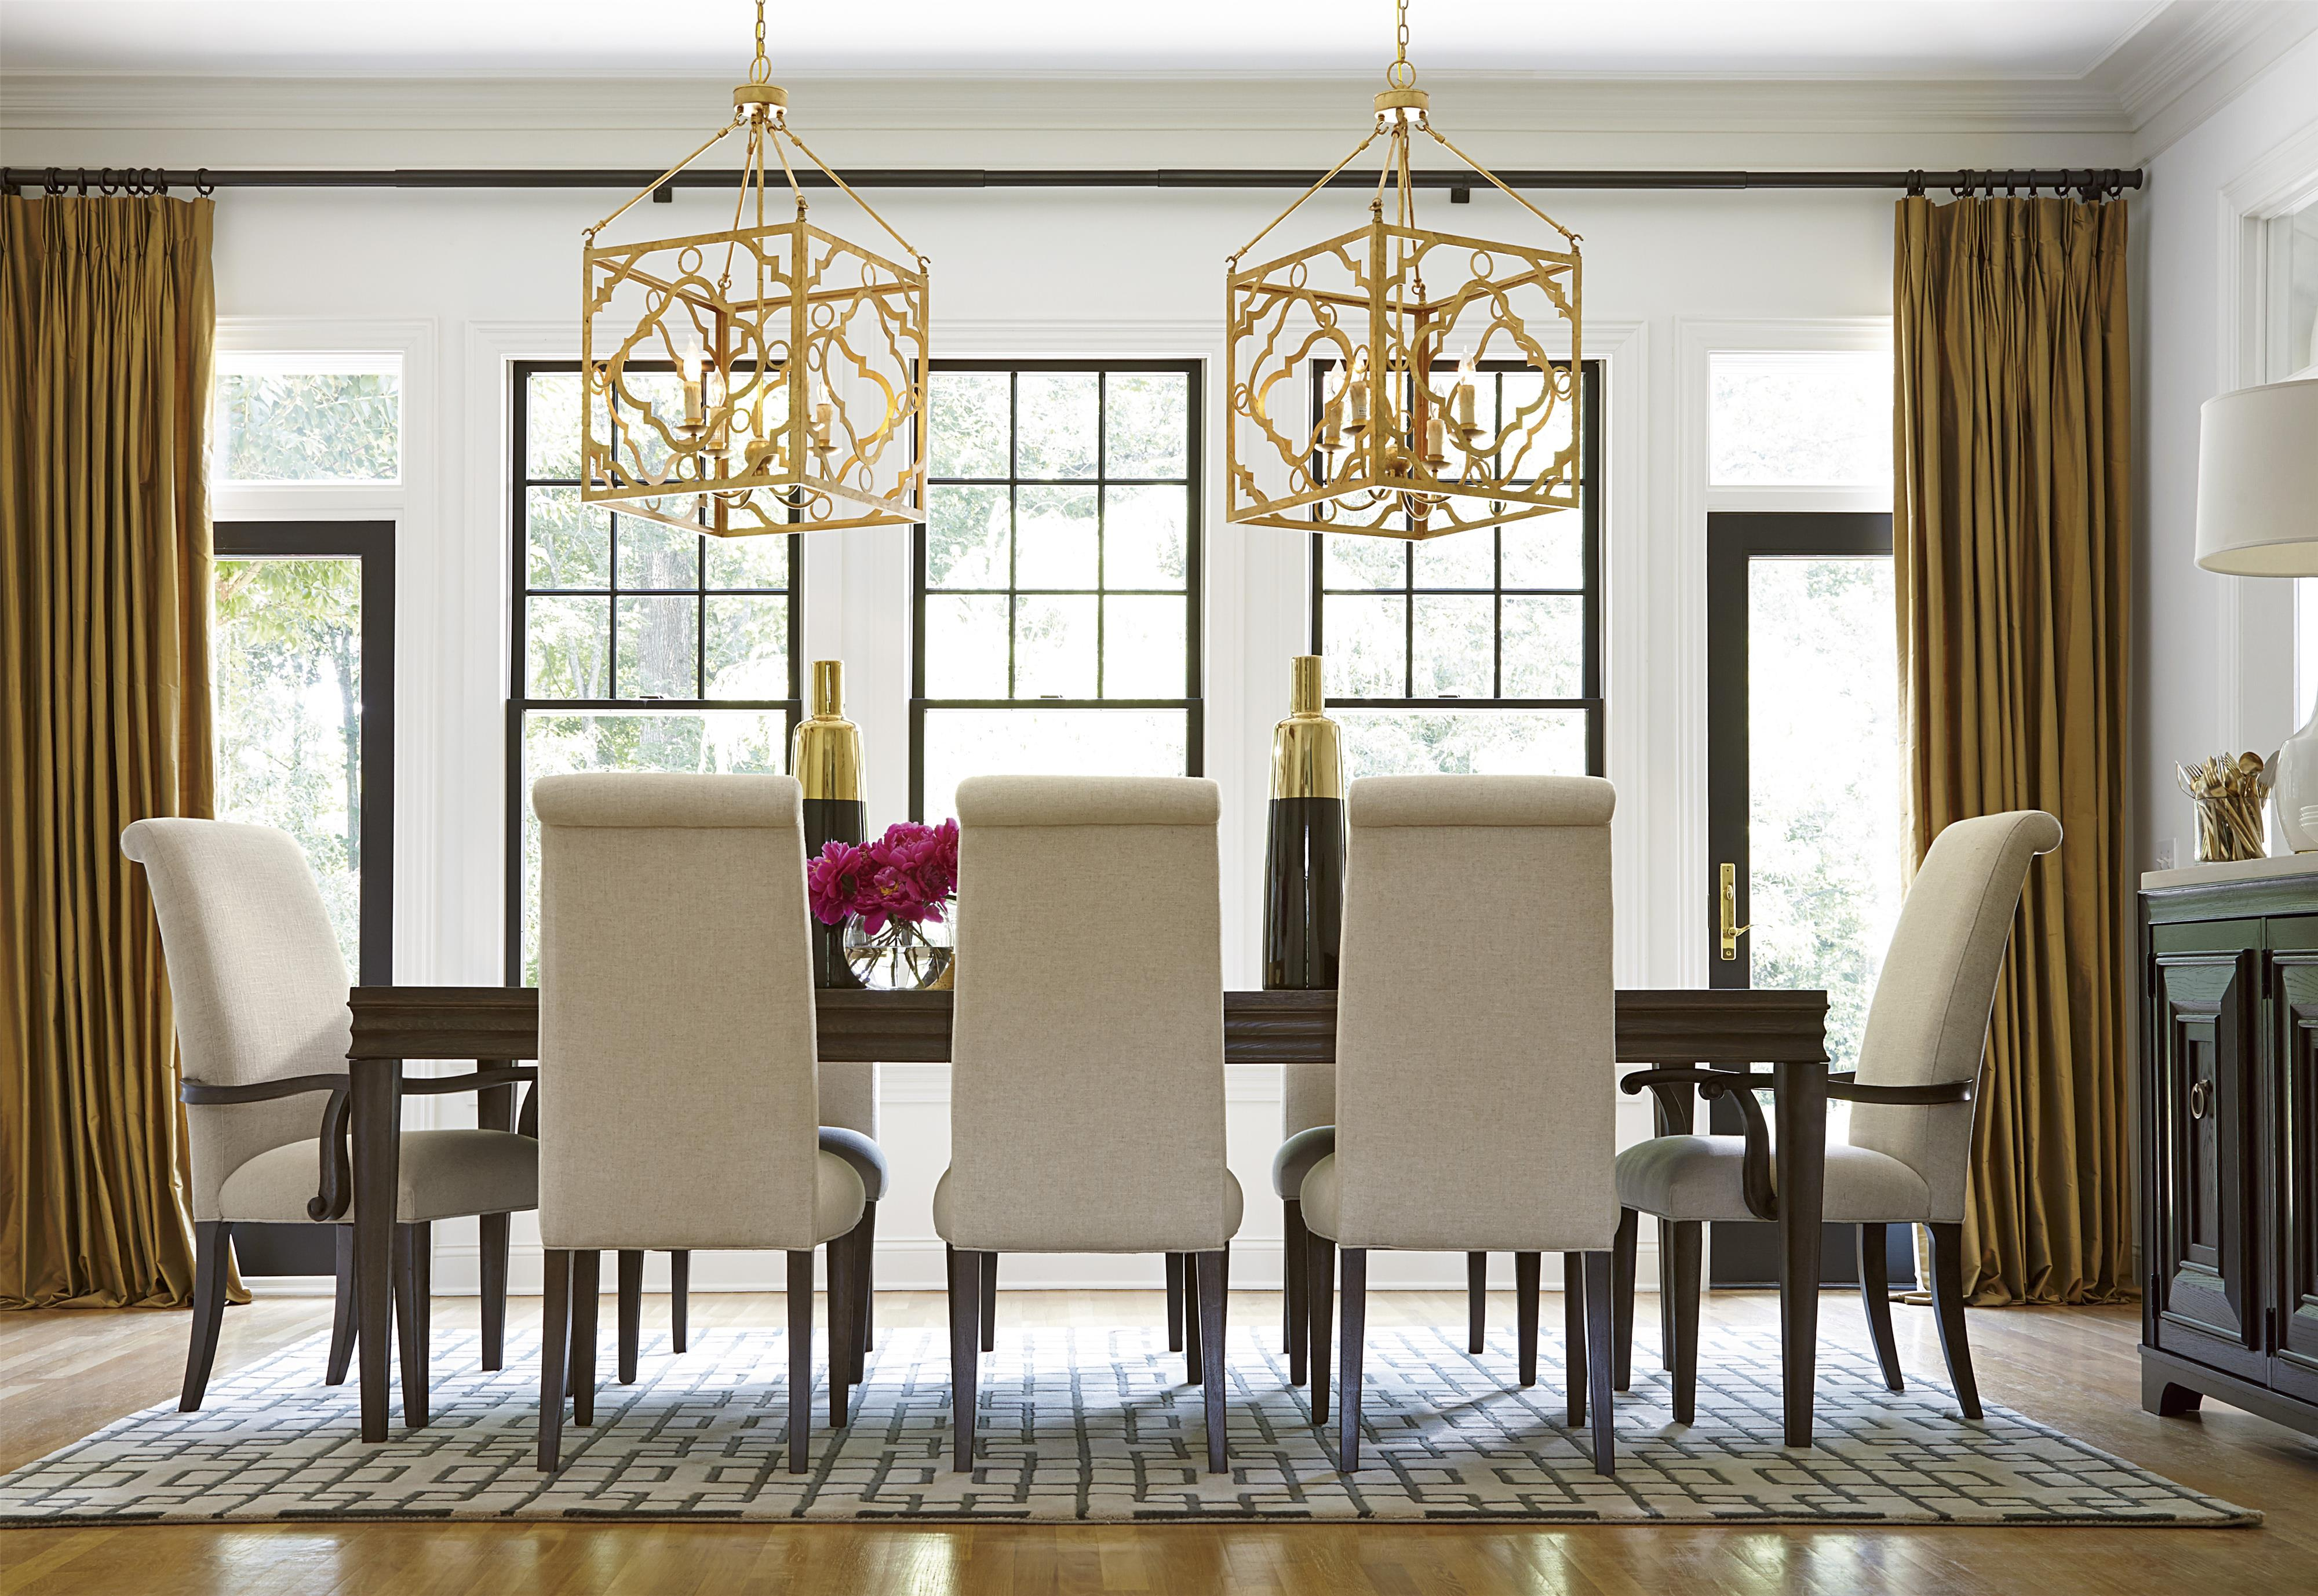 Universal California - Hollywood Hills Formal Dining Room Group - Item Number: 475 Dining Room Group 2